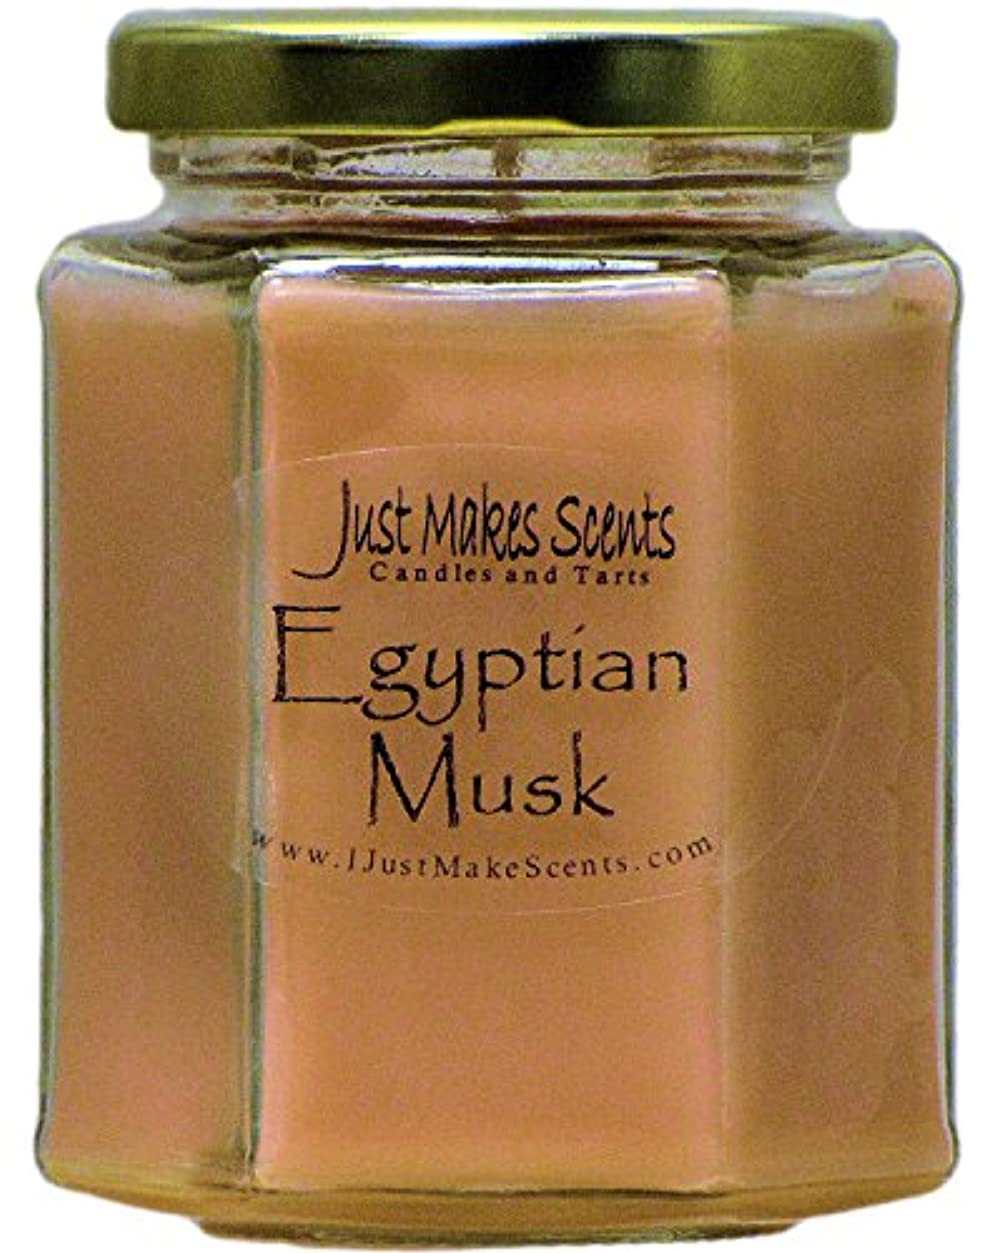 ツーリスト謝るオークEgyptian Musk Scented Blended大豆キャンドルby Just Makes Scents8オンス。。。 1 Candle C03809HCNL